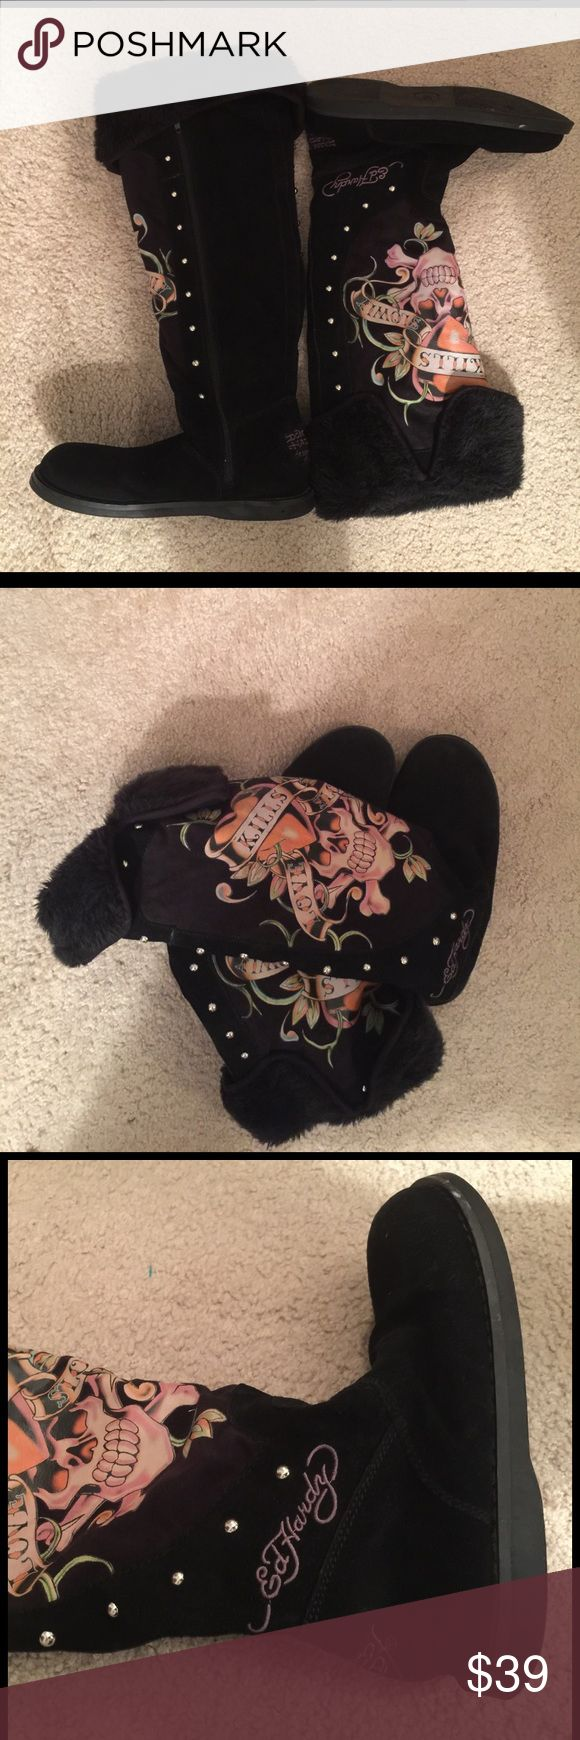 Don Ed Hardy Love Kills Slowly Suede Fur Boots 8 These Ed Hardy boots are soft fold over fur inside black suede with Love Kills Slowly Logo and silver studs. Side zipper size 8. Christian Audinger. Don Ed Hardy Shoes Winter & Rain Boots